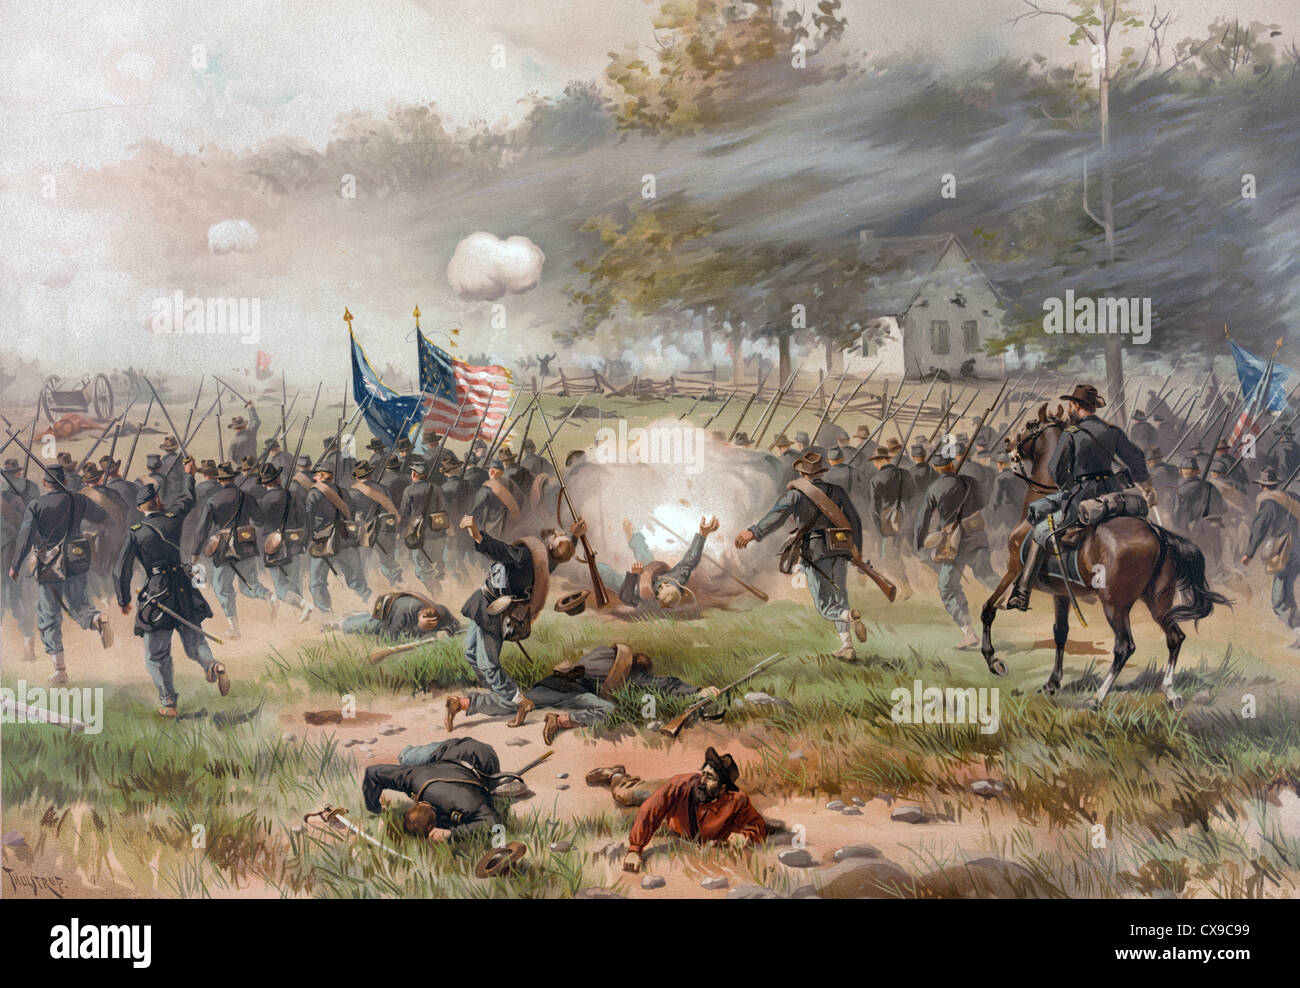 Battle of Antietam also known as the Battle of Sharpsburg, American Civil War - Stock Image